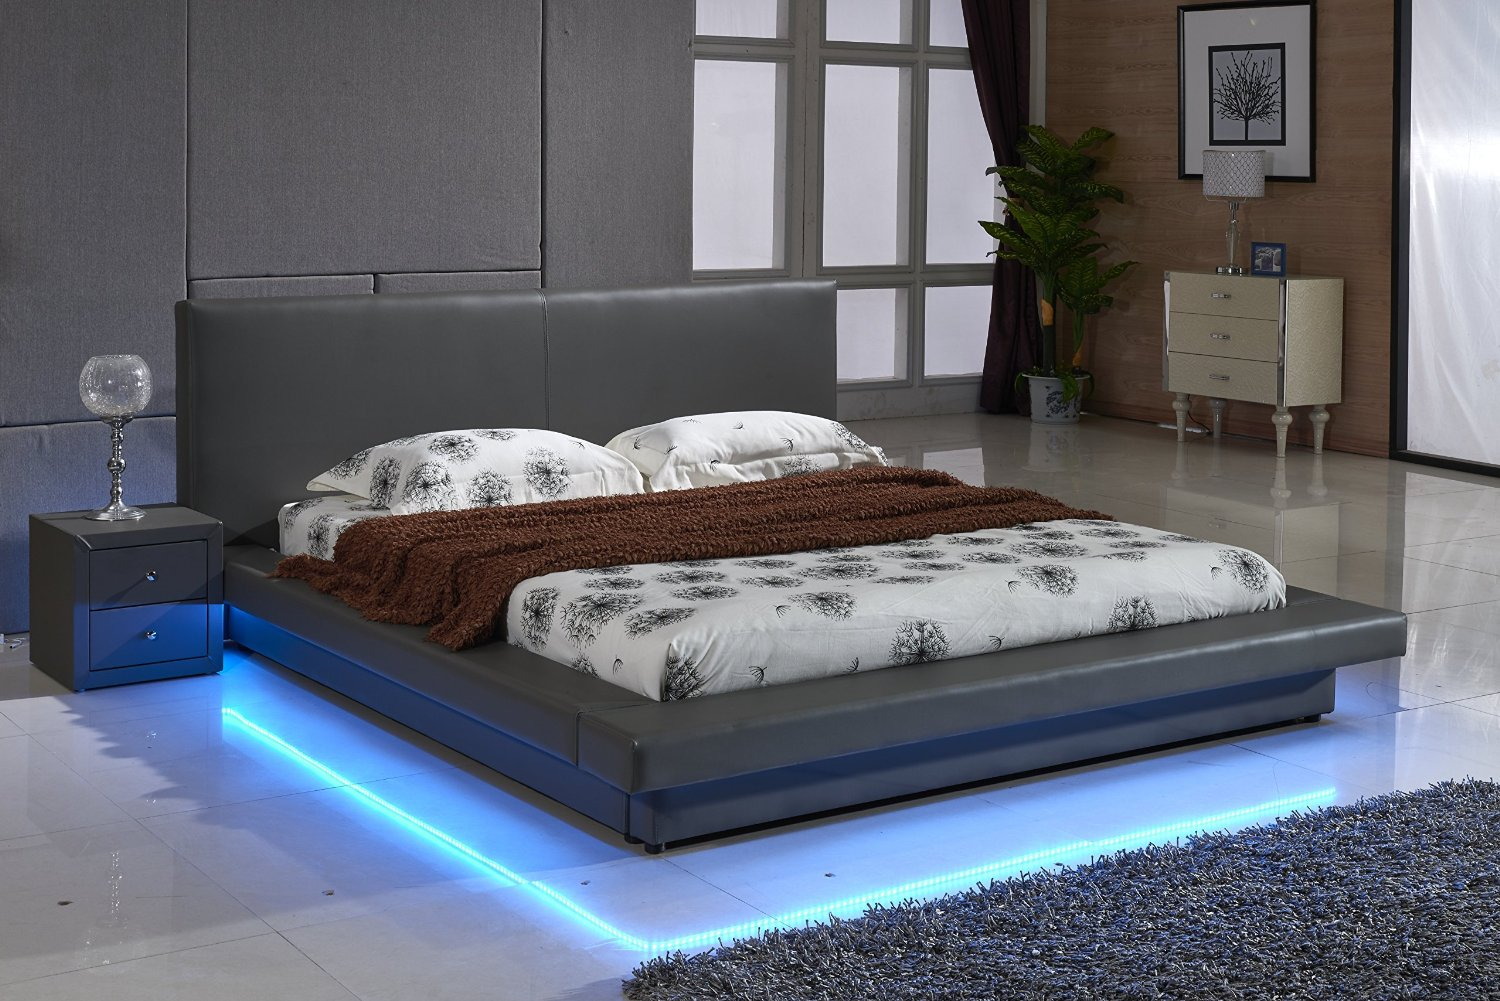 Container Furniture Direct Modern Faux Leather Upholstered Platform Bed with Headboard and LED Lighting, Gray, Queen Size